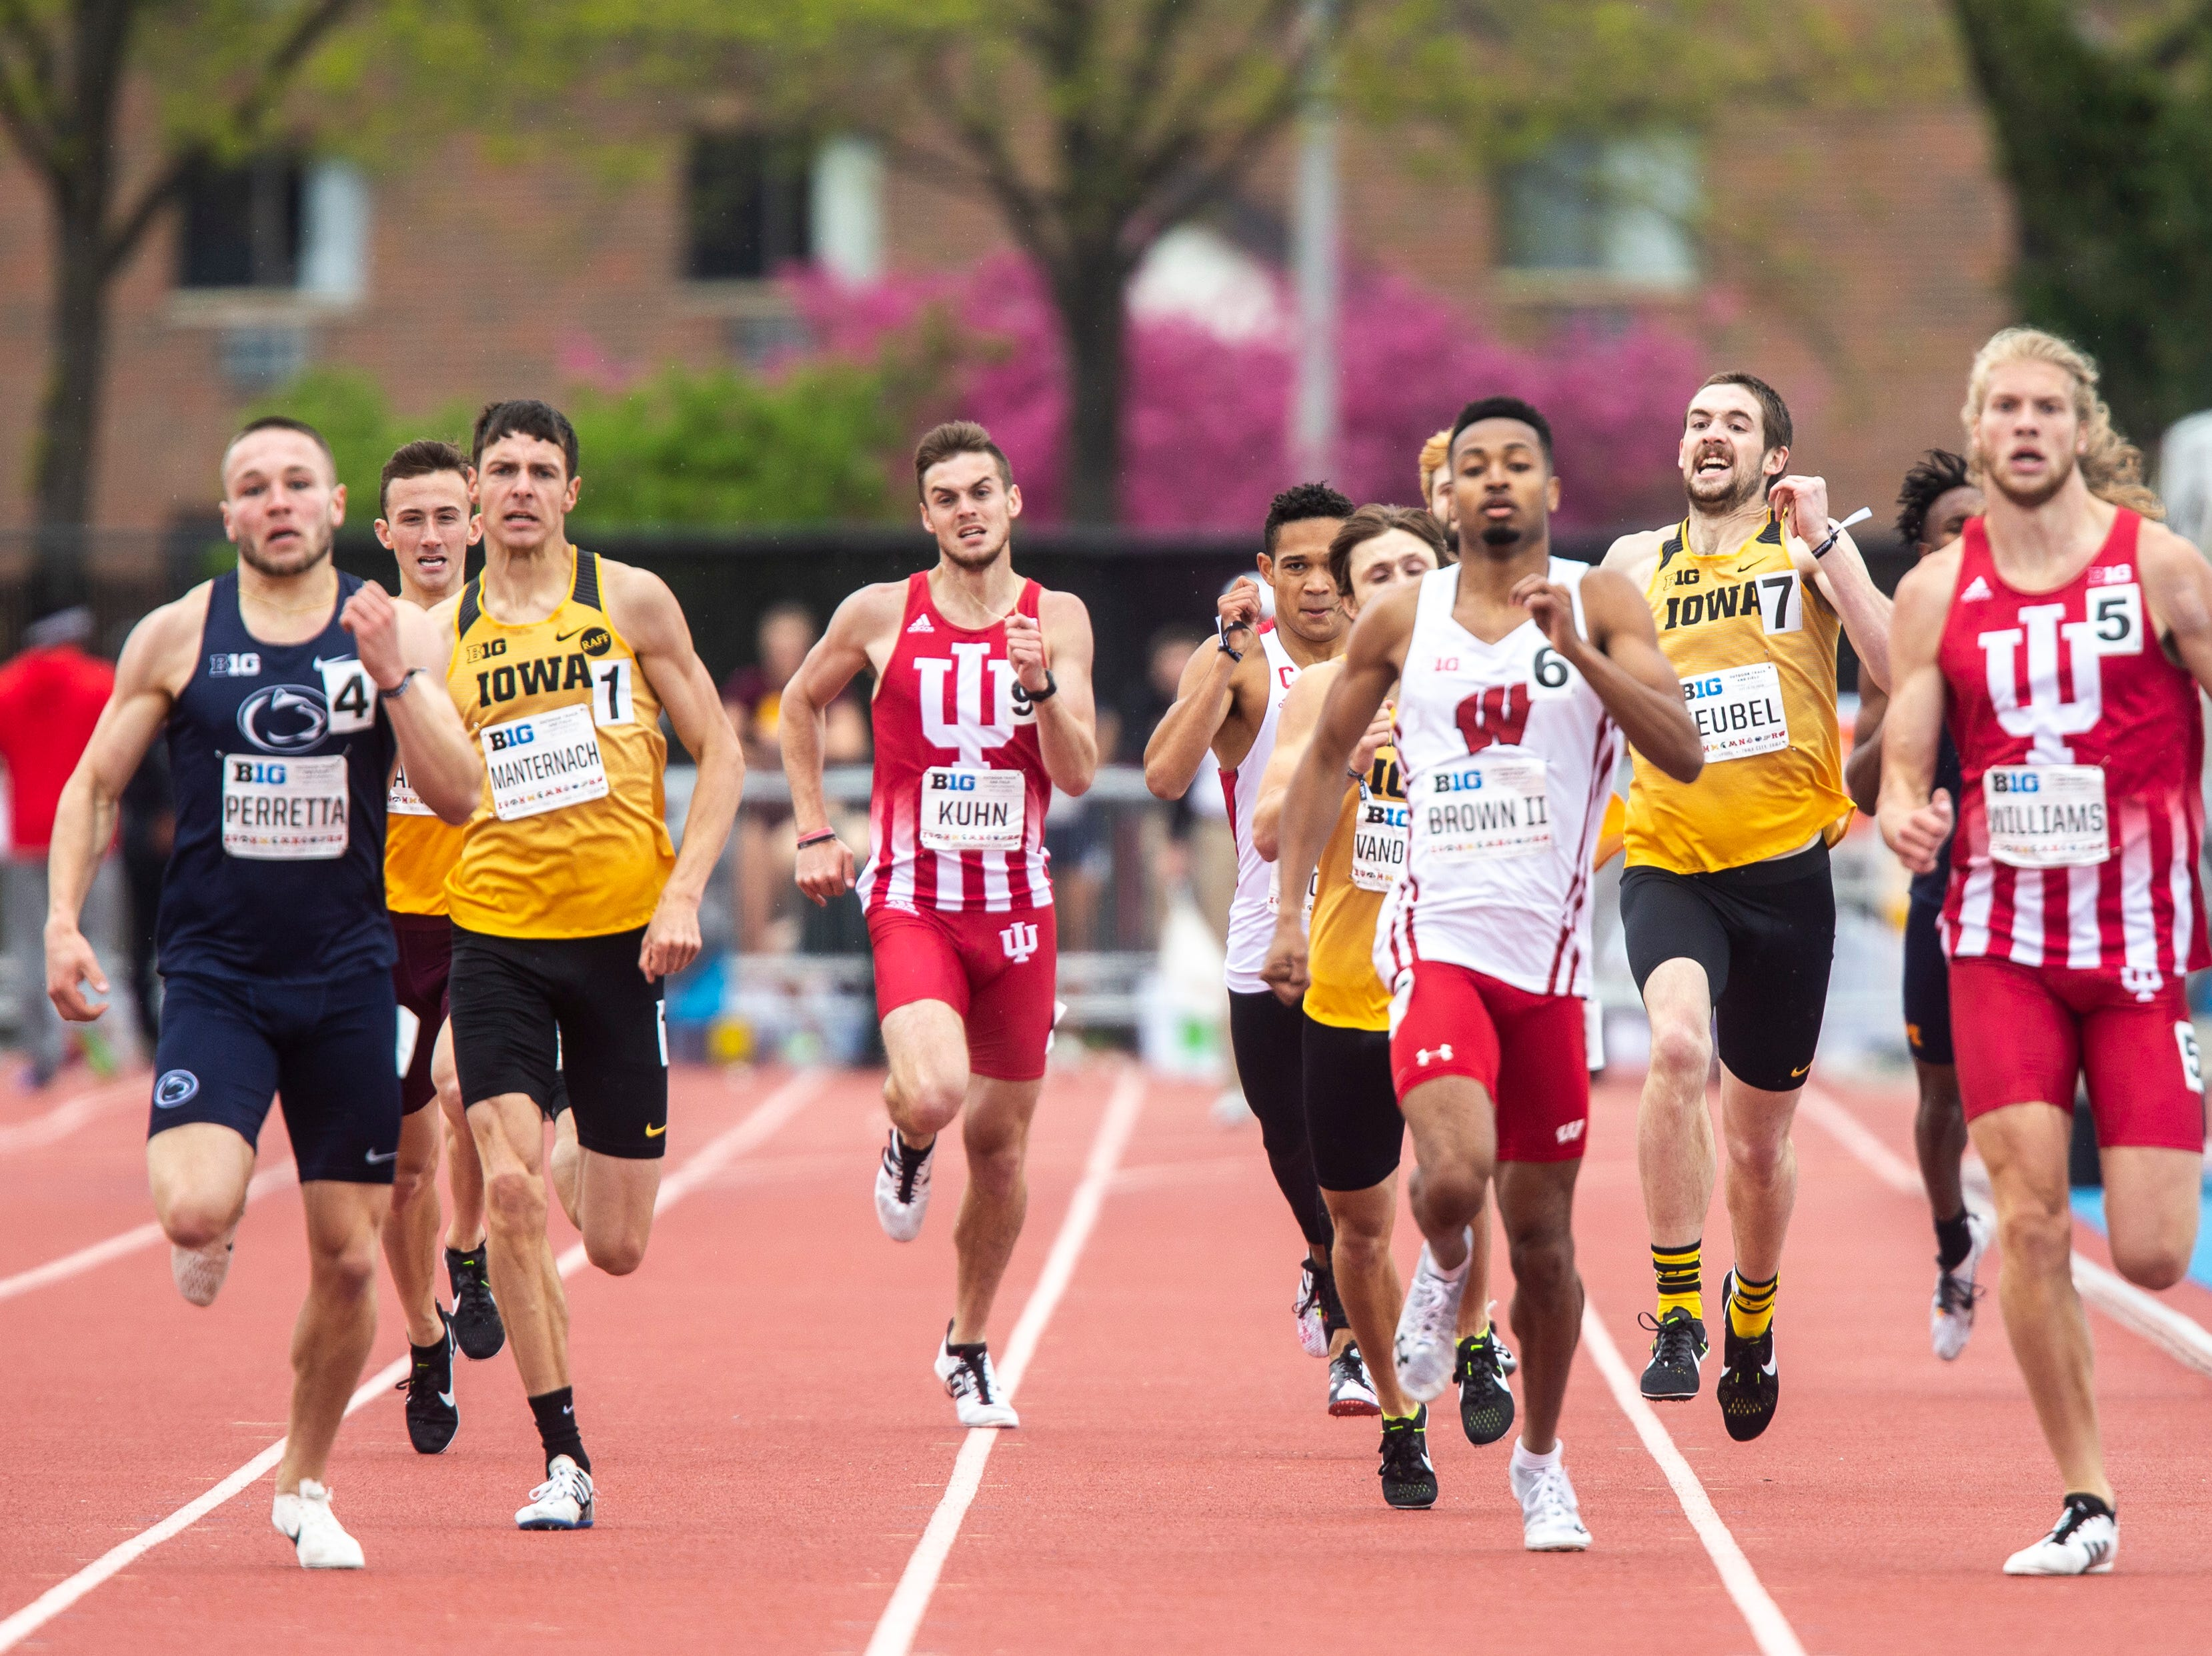 Iowa's Nolan Teubel (7) competes in the 800 meter finals during the final day of Big Ten track and field outdoor championships, Sunday, May 12, 2019, at Francis X. Cretzmeyer Track on the University of Iowa campus in Iowa City, Iowa. Teubel finished fifth, with a time of 1:49.54.